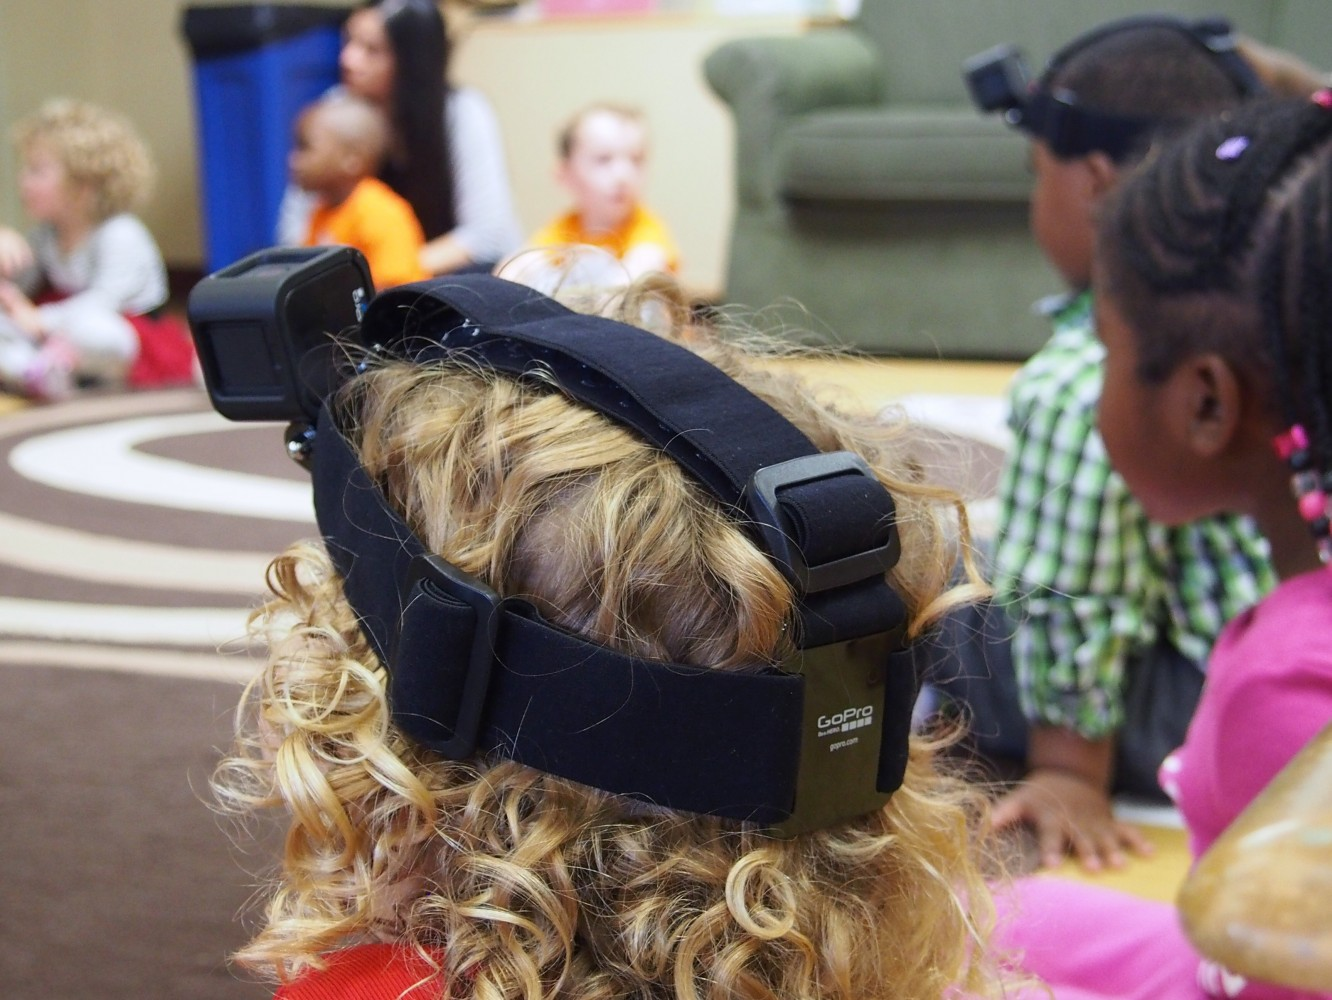 Preschoolers wore video cameras to capture their perspective.